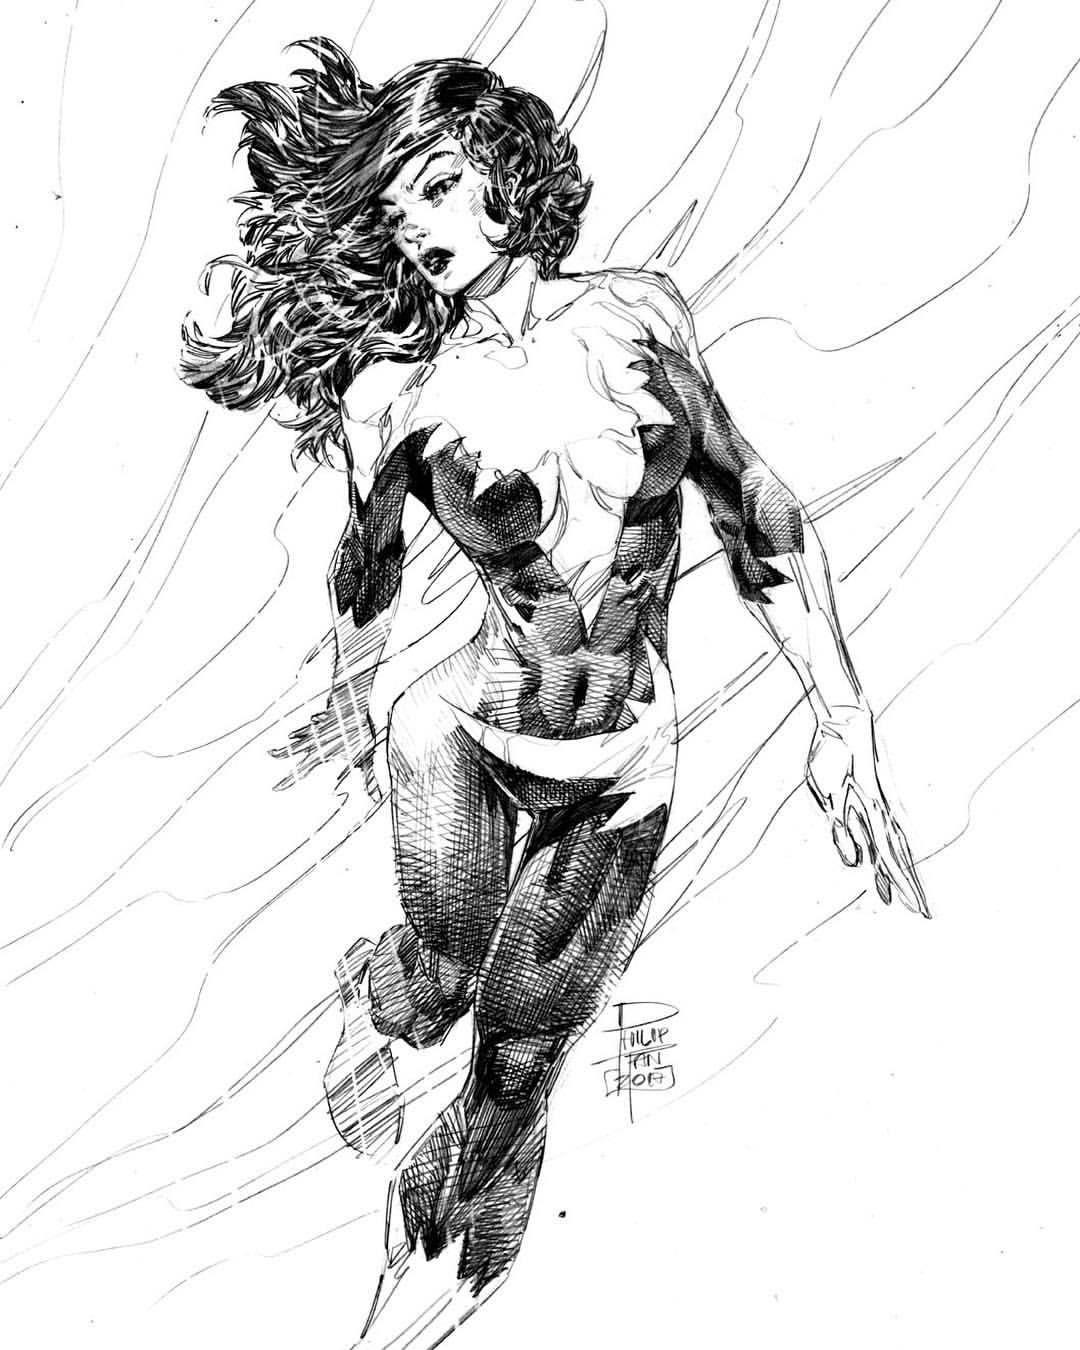 Aurora by phillip tan aurora xmen alphaflight mutants marvel comics pencil sketch art commission アメコミ 漫画